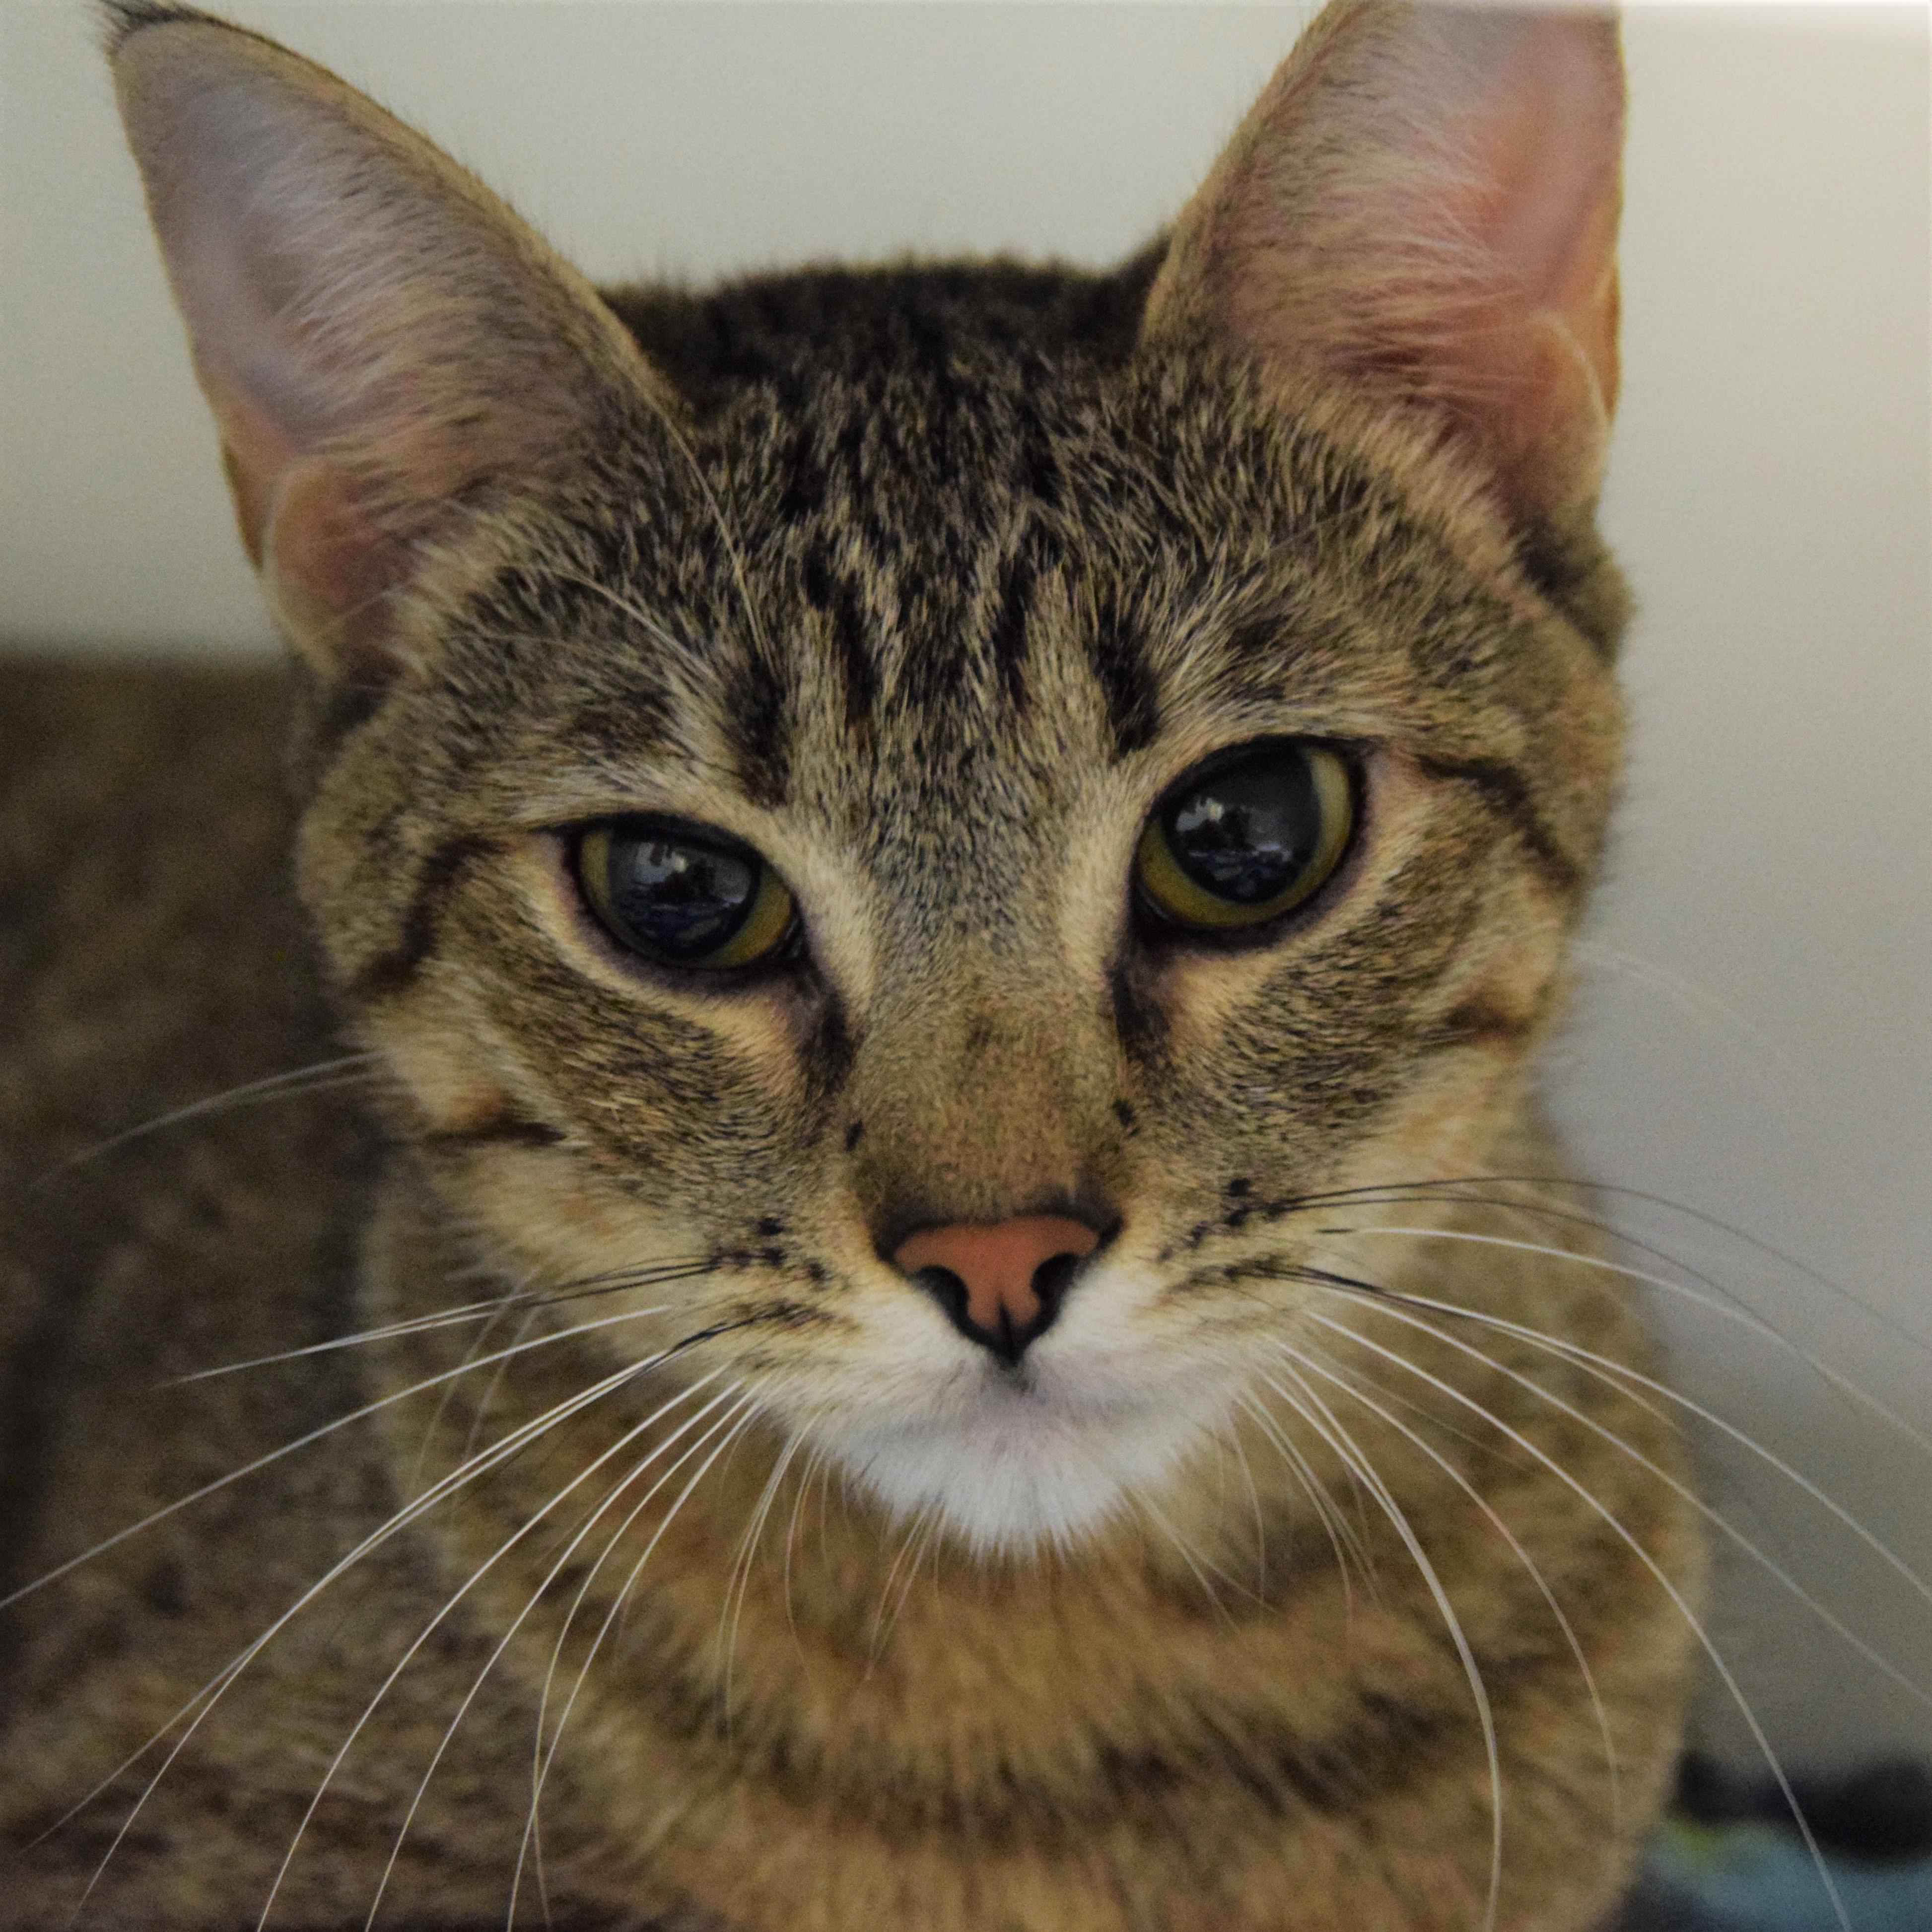 Hello, my name is Betty - I'm a lovely two year old brown tabby girl with sweet eyes. I've lived well with other kitties before, but dogs make me quite nervous. I'd love to join your quieter household with older kids so I have some space and time to settle into our new life together!